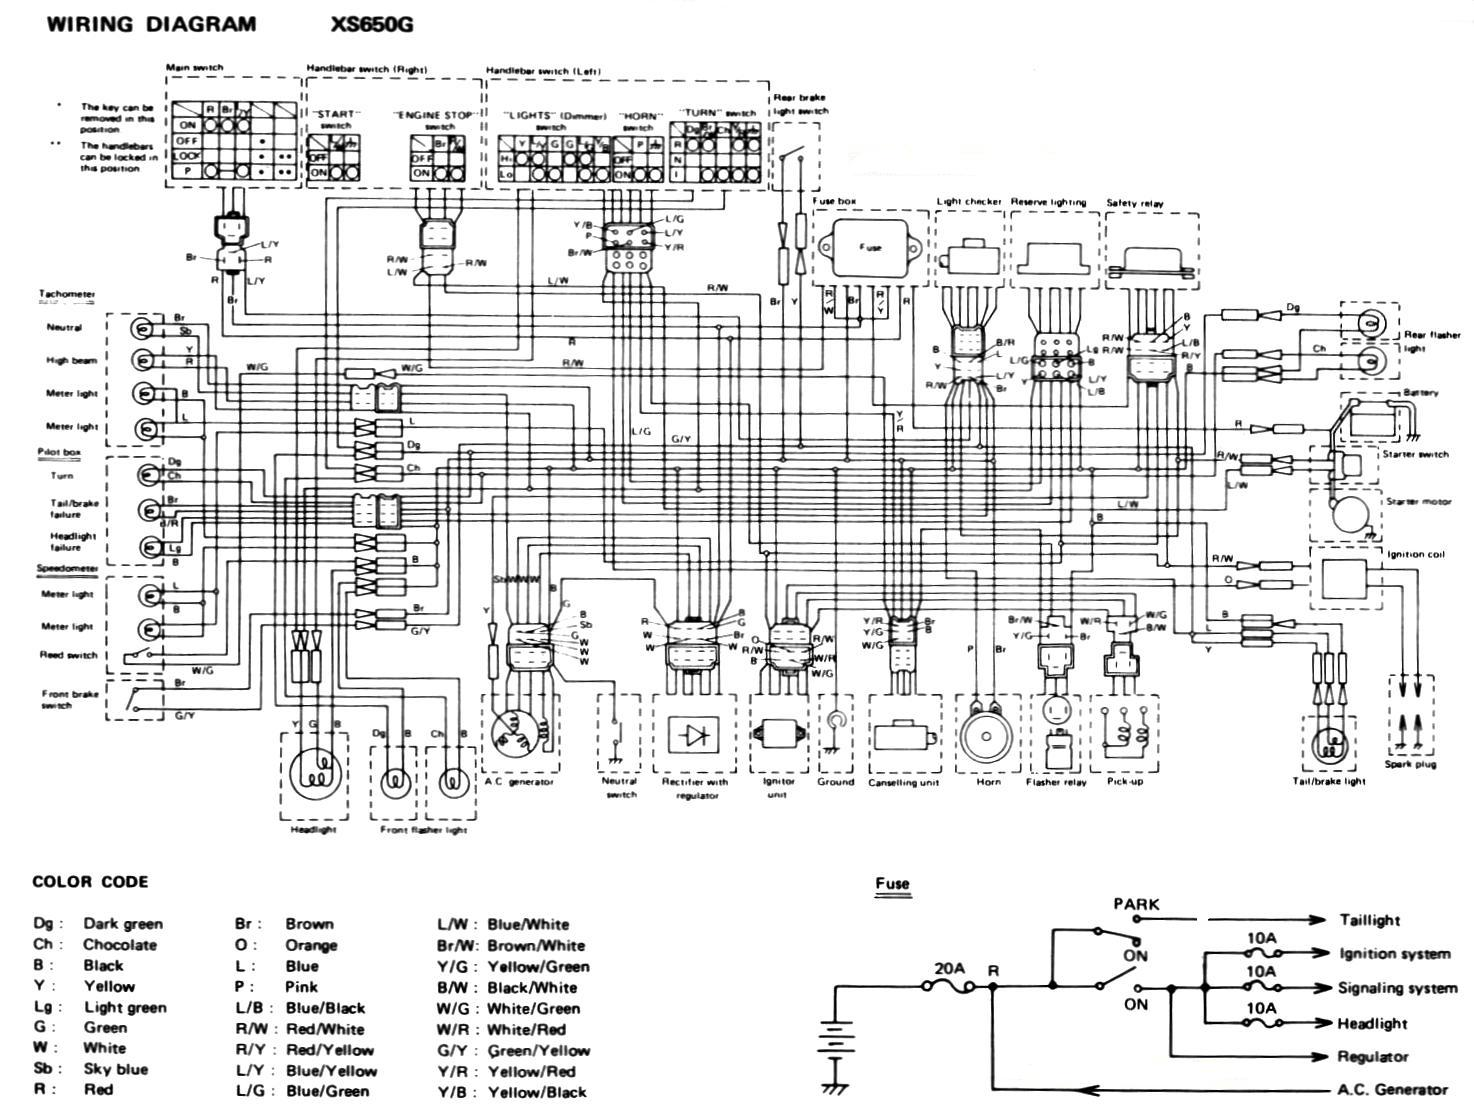 hight resolution of suzuki gt750 wiring diagram schema diagram databasewrg 1374 kawasaki gt750 wiring diagram suzuki gt750 wiring